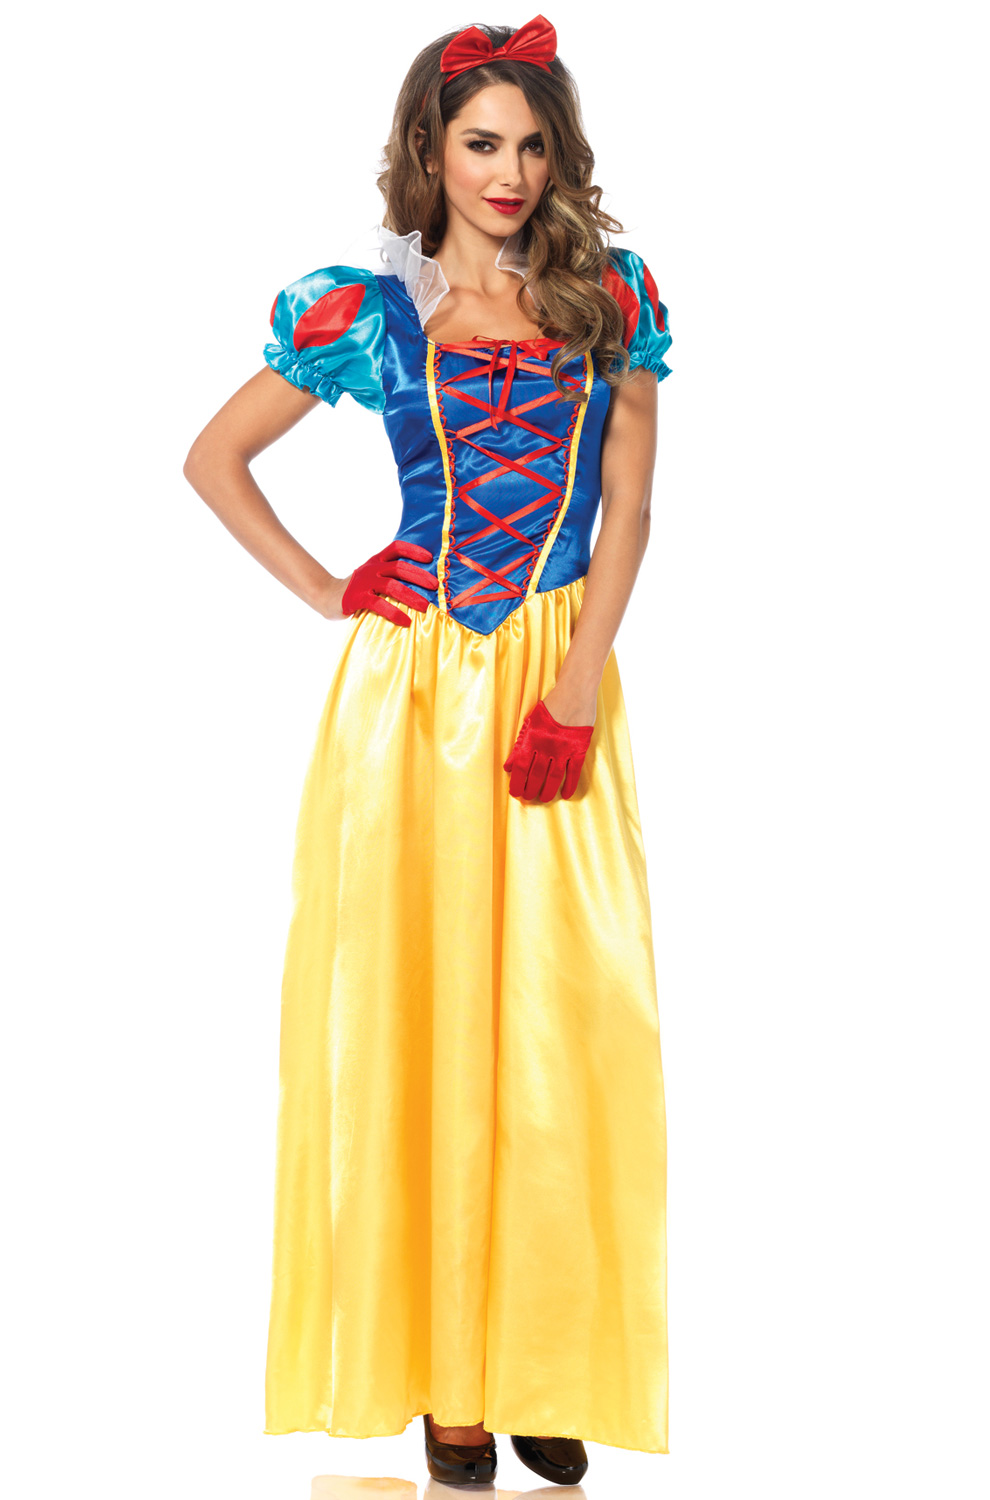 Final, sorry, snow white adult costume remarkable, this